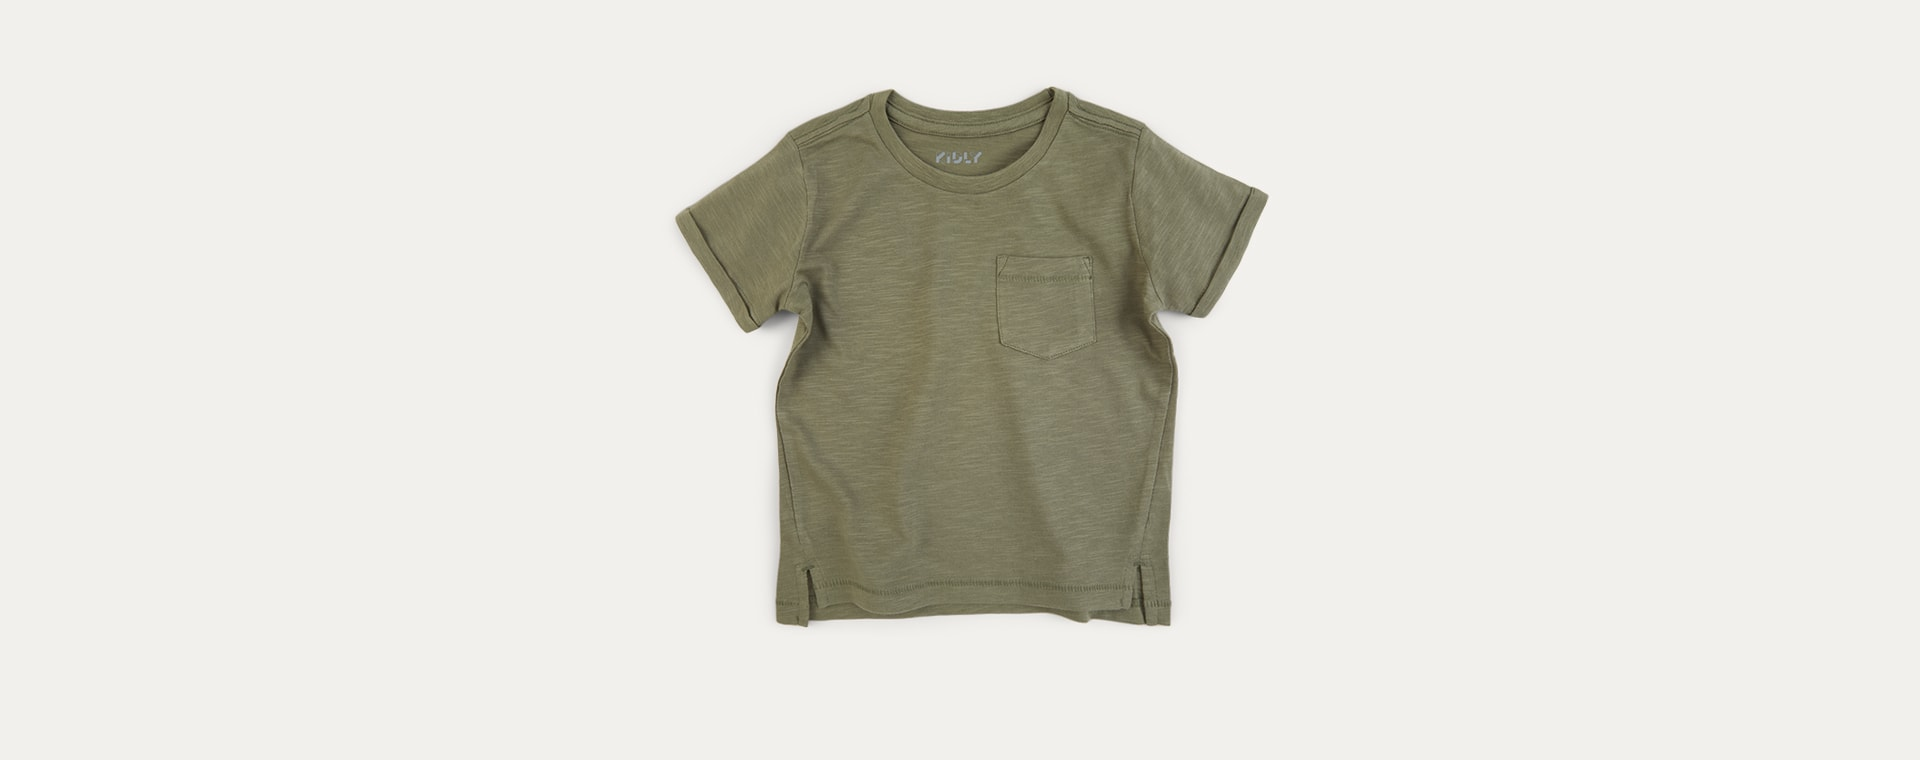 Vertiver KIDLY Label Perfect Tee